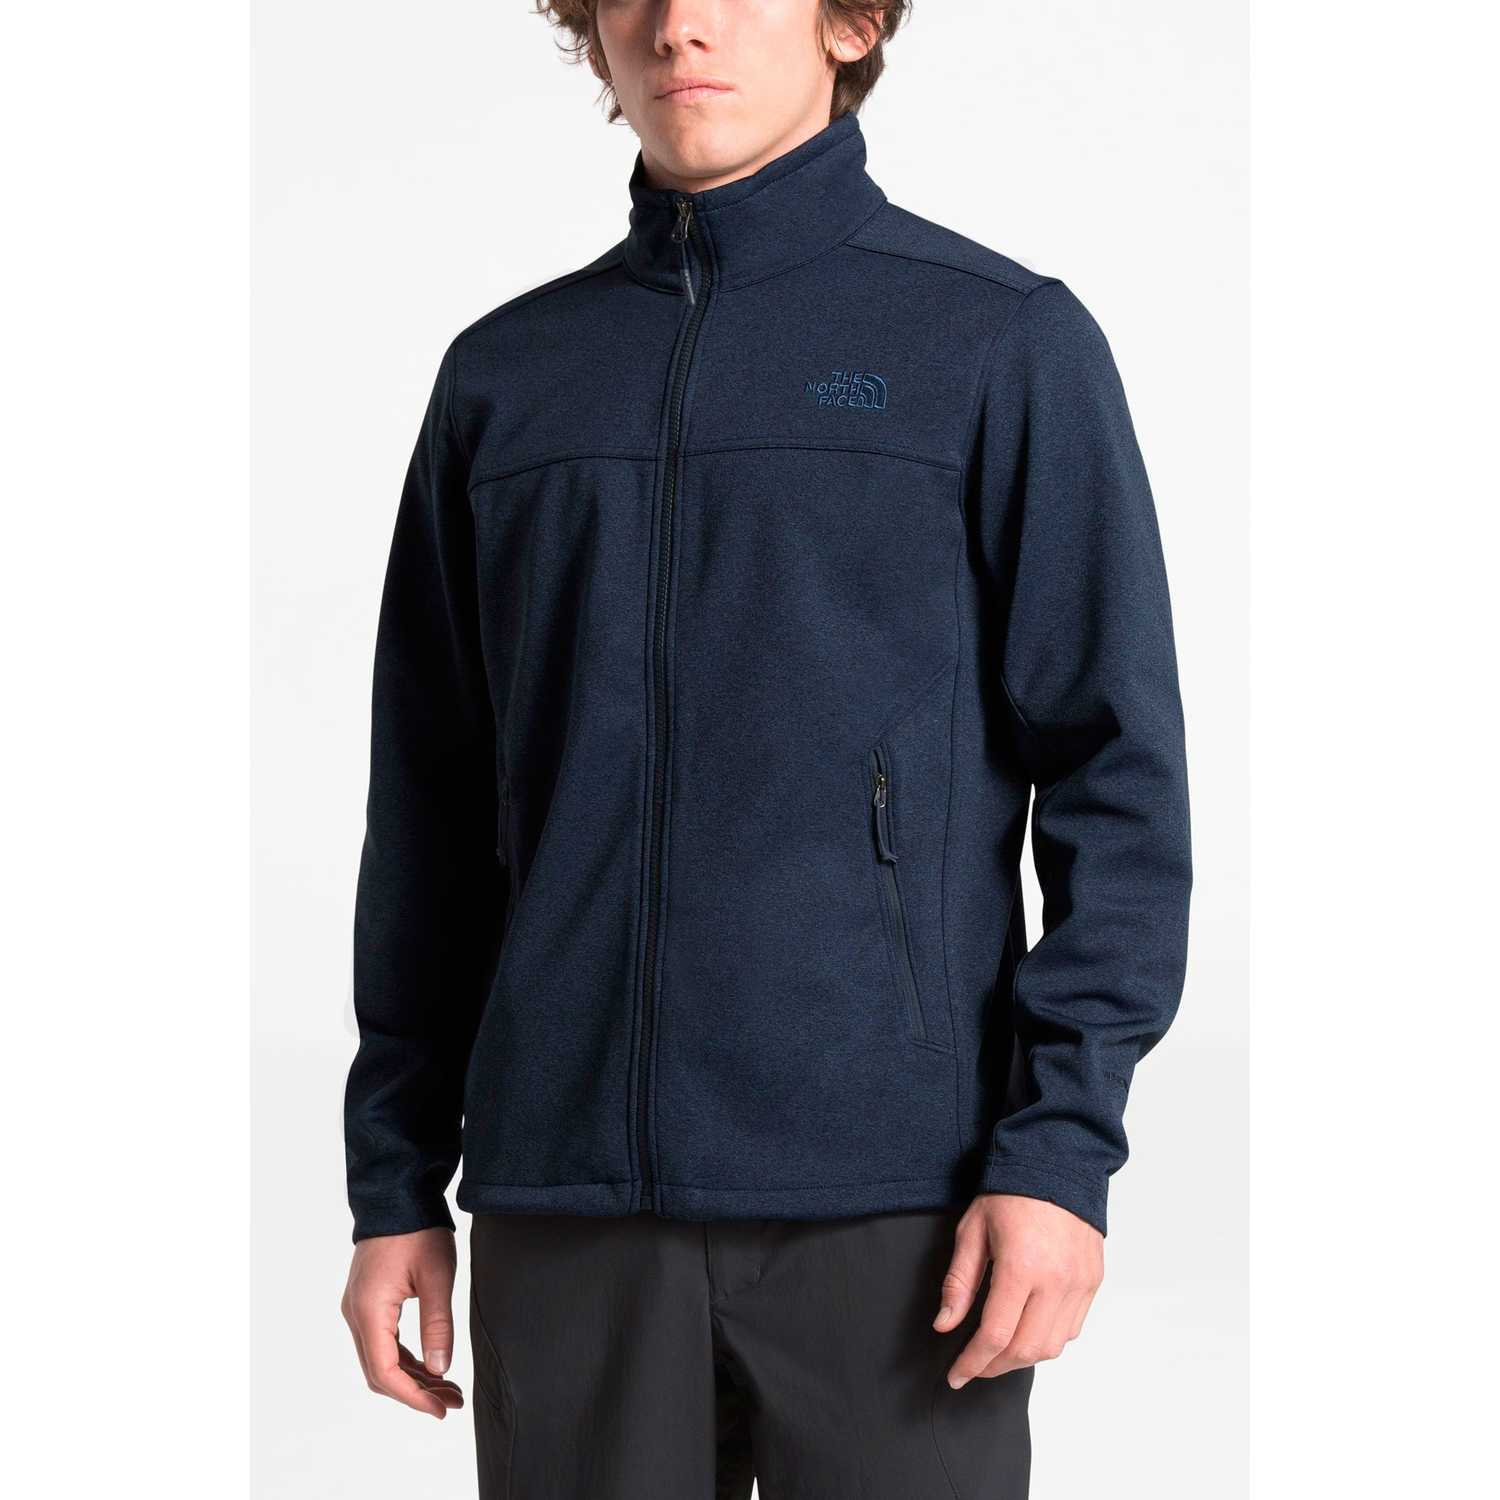 Casaca de Hombre The North Face Navy m apex canyonwall jacket